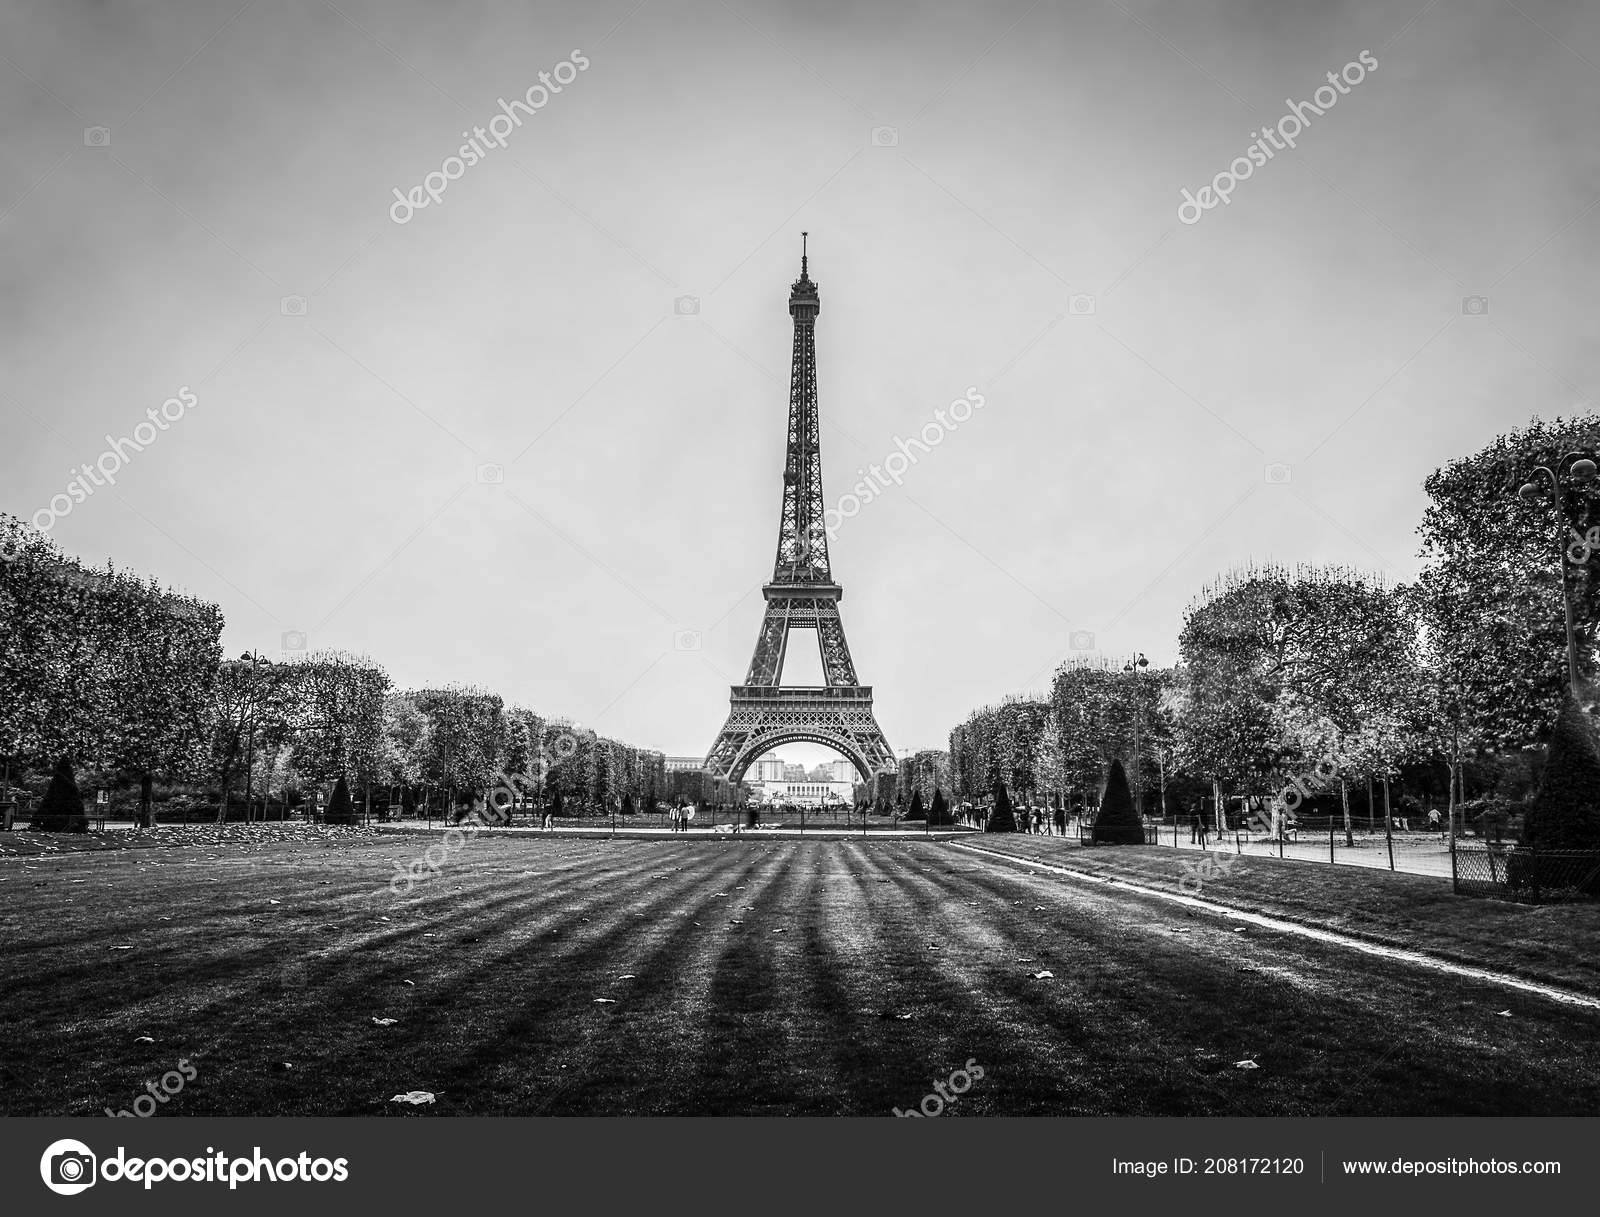 eiffelturm paris einem regnerischen herbstabend schwarz wei foto stockfoto innervision. Black Bedroom Furniture Sets. Home Design Ideas